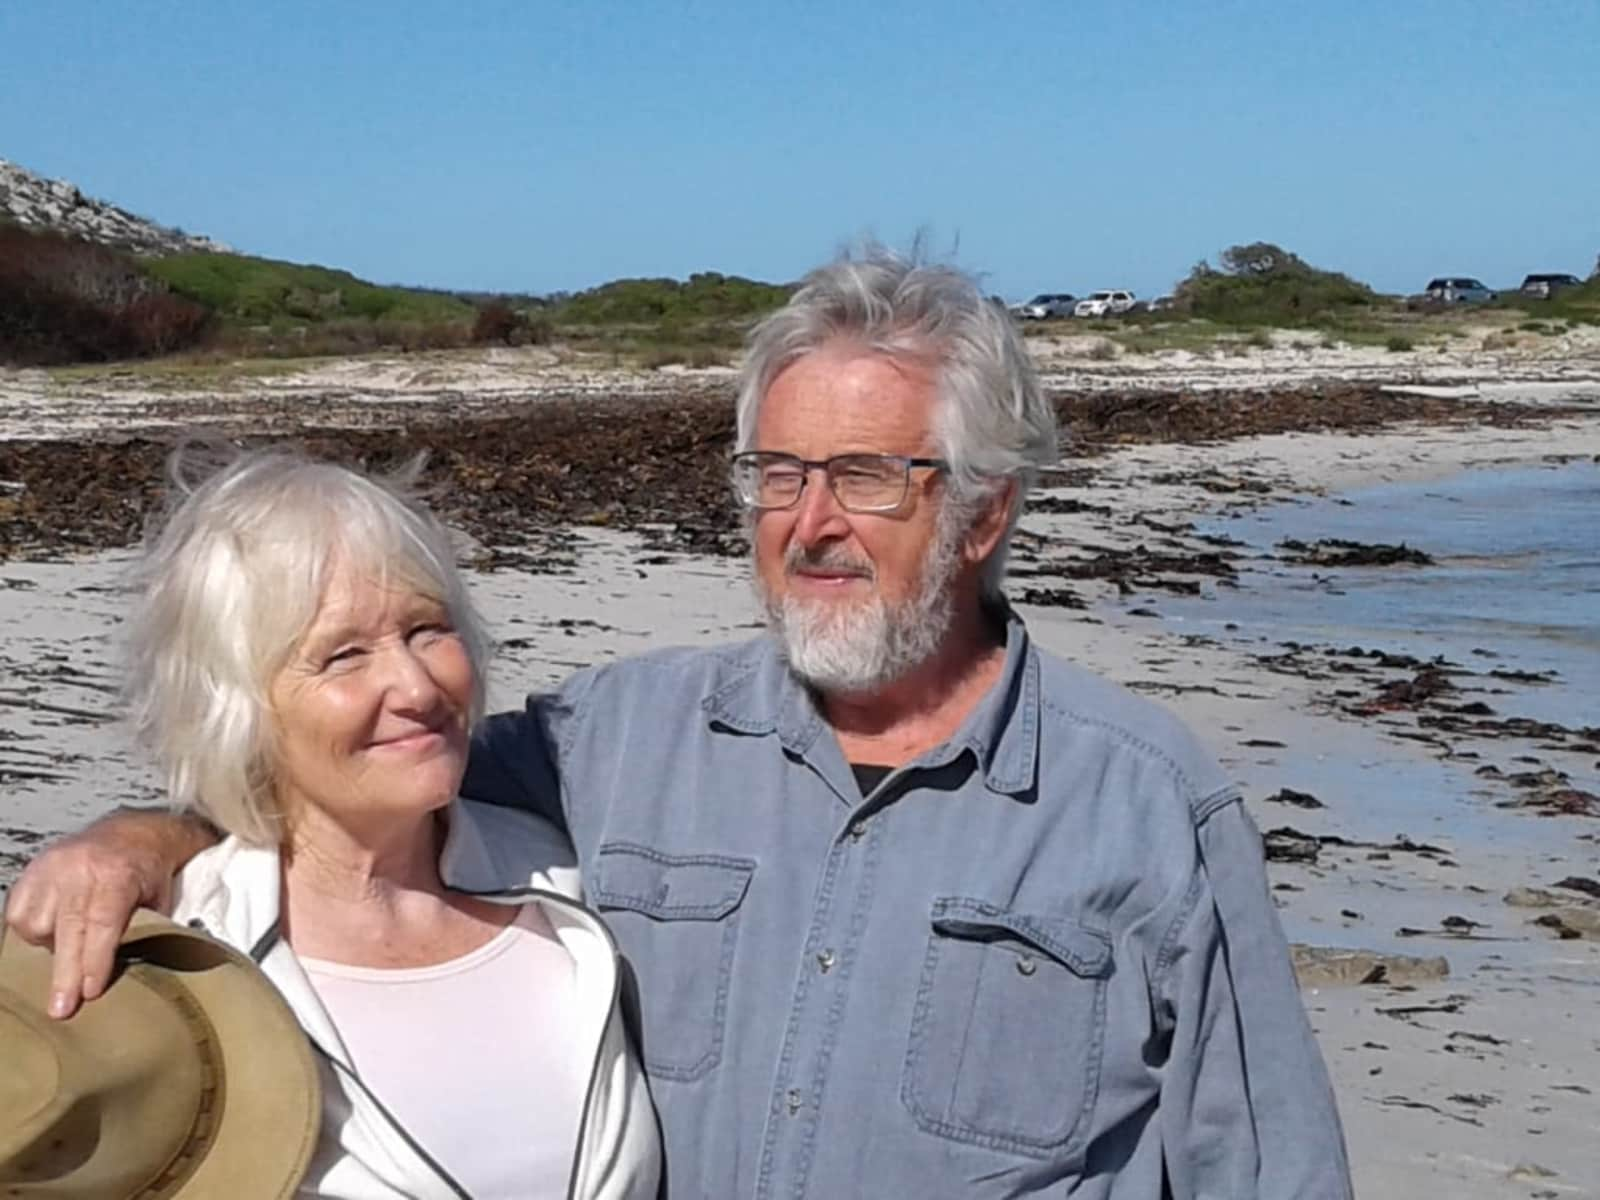 Howard & Sheilagh from Cape Town, South Africa